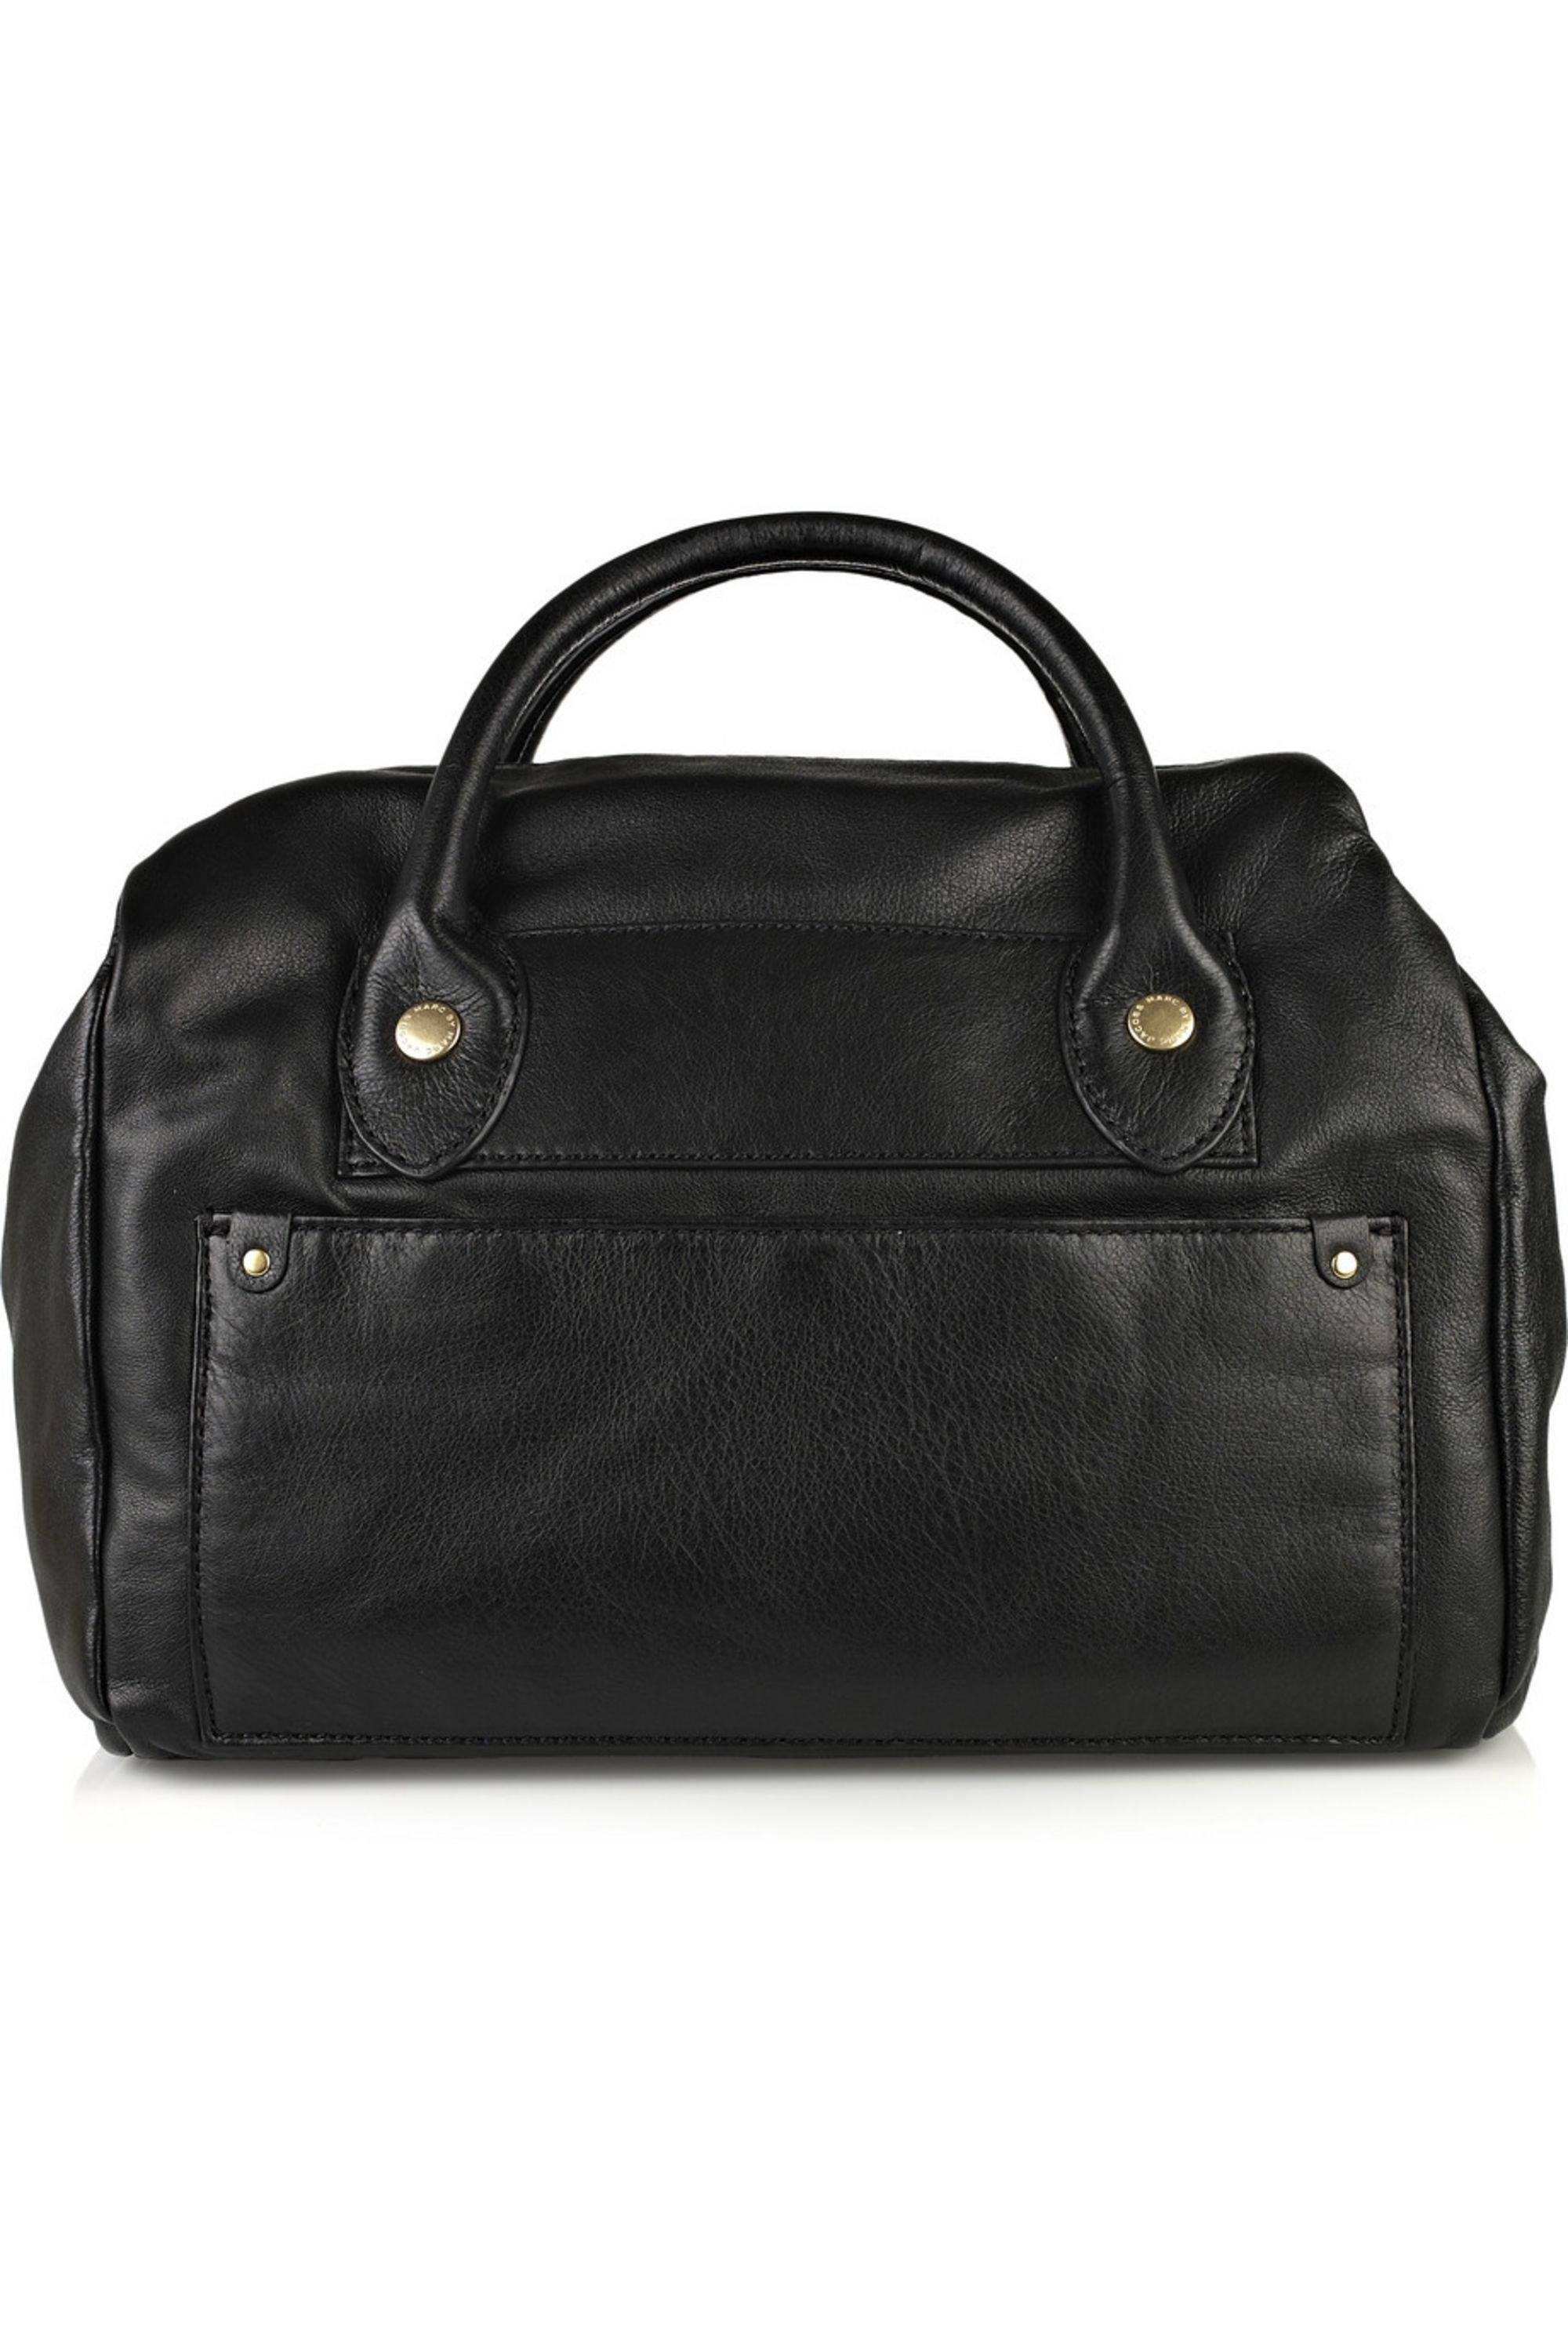 Marc by Marc Jacobs Pearl leather shoulder bag